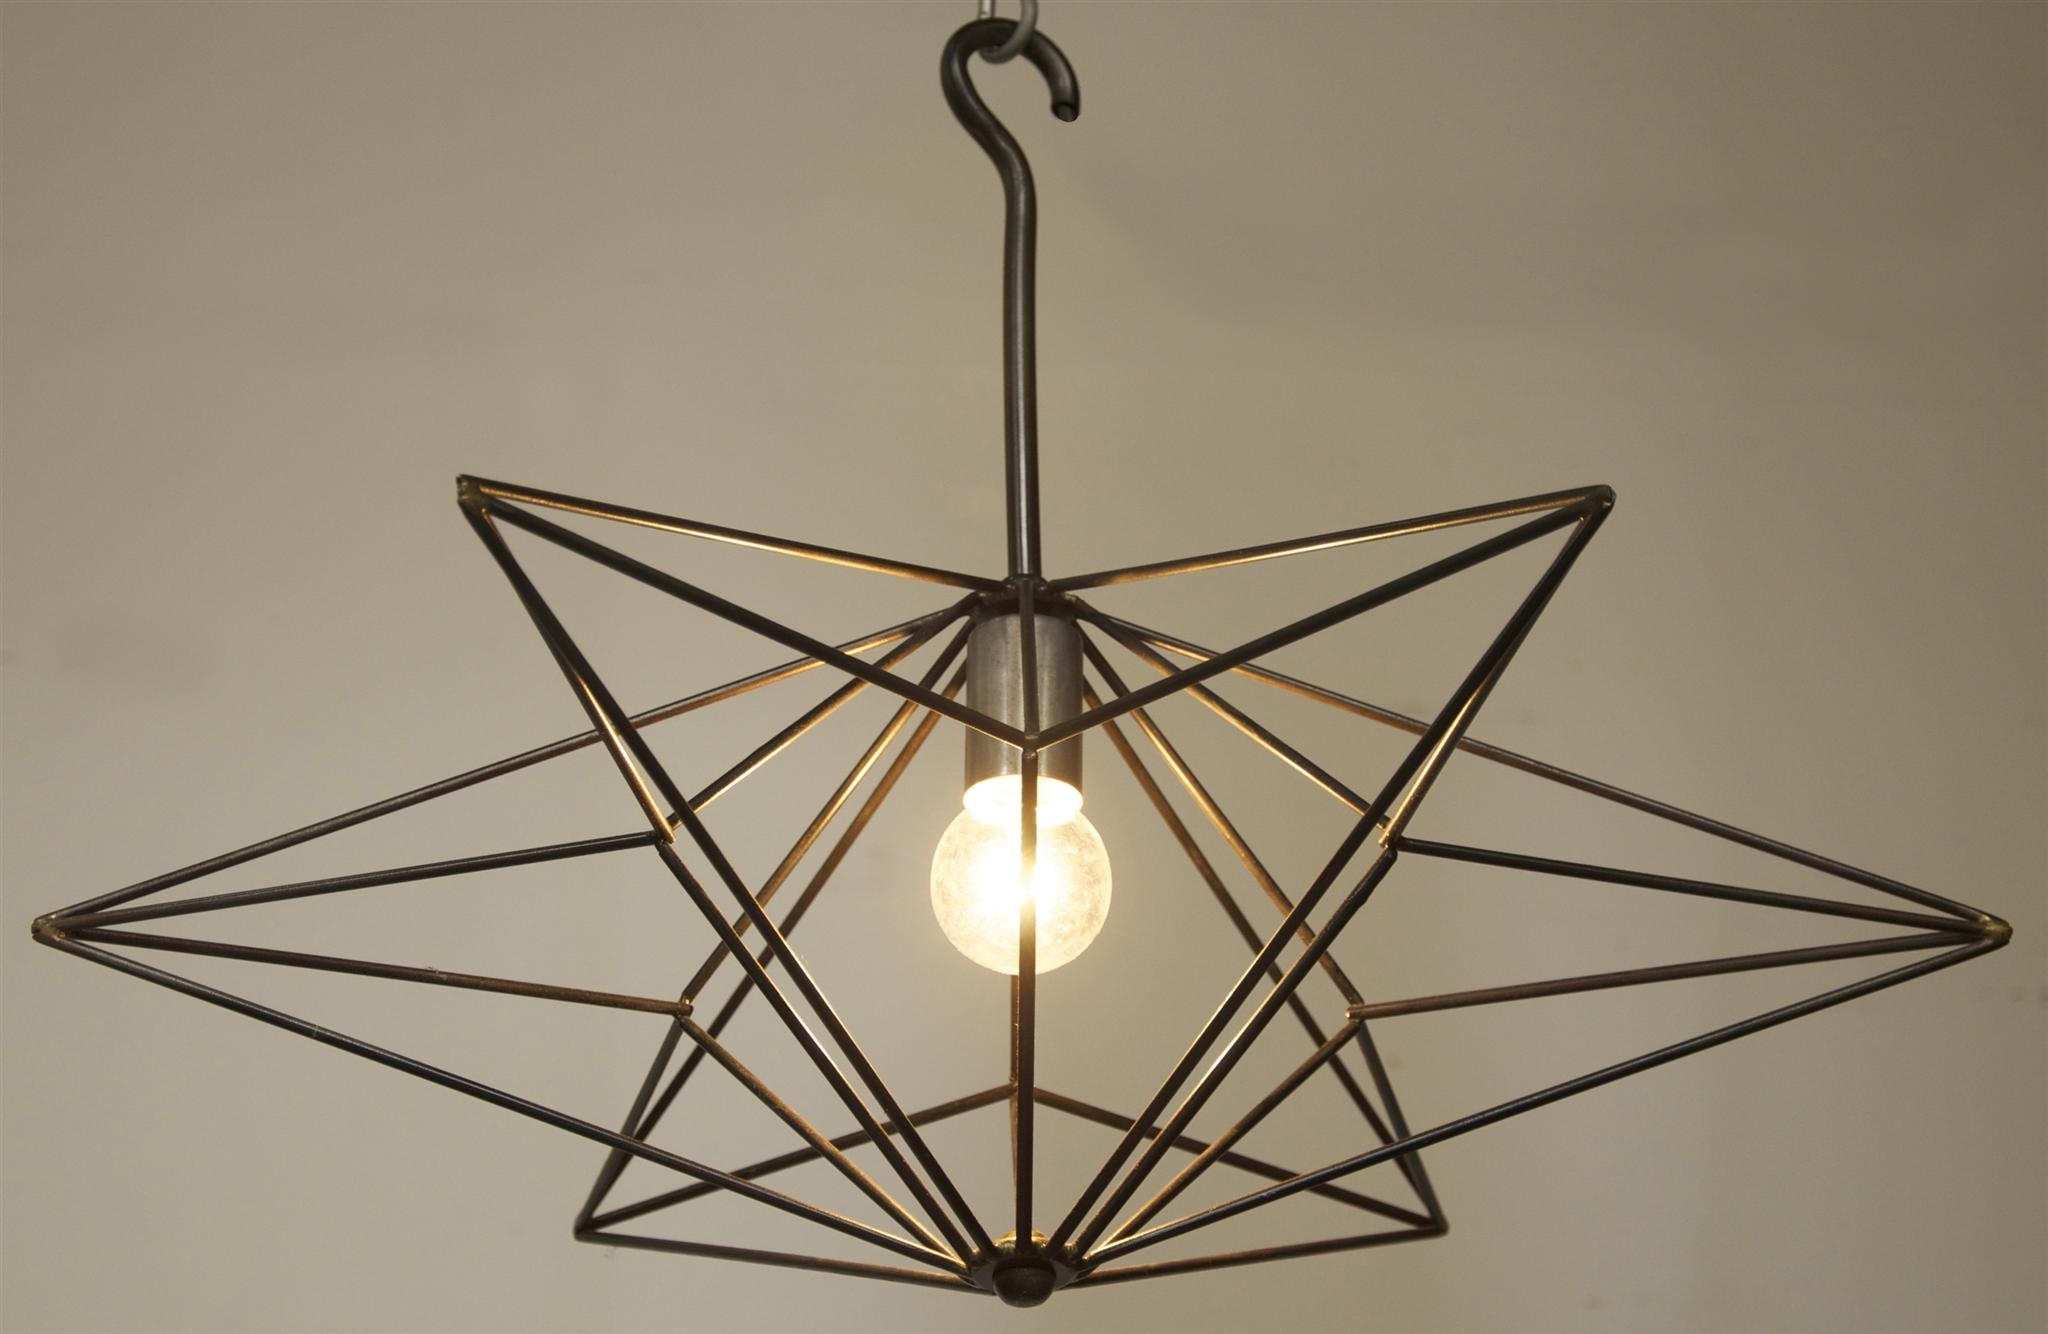 Pendant Lighting : Amazing Star Pendant Light With Plug , Texas Star With Regard To Outdoor Hanging Star Lights (#13 of 15)